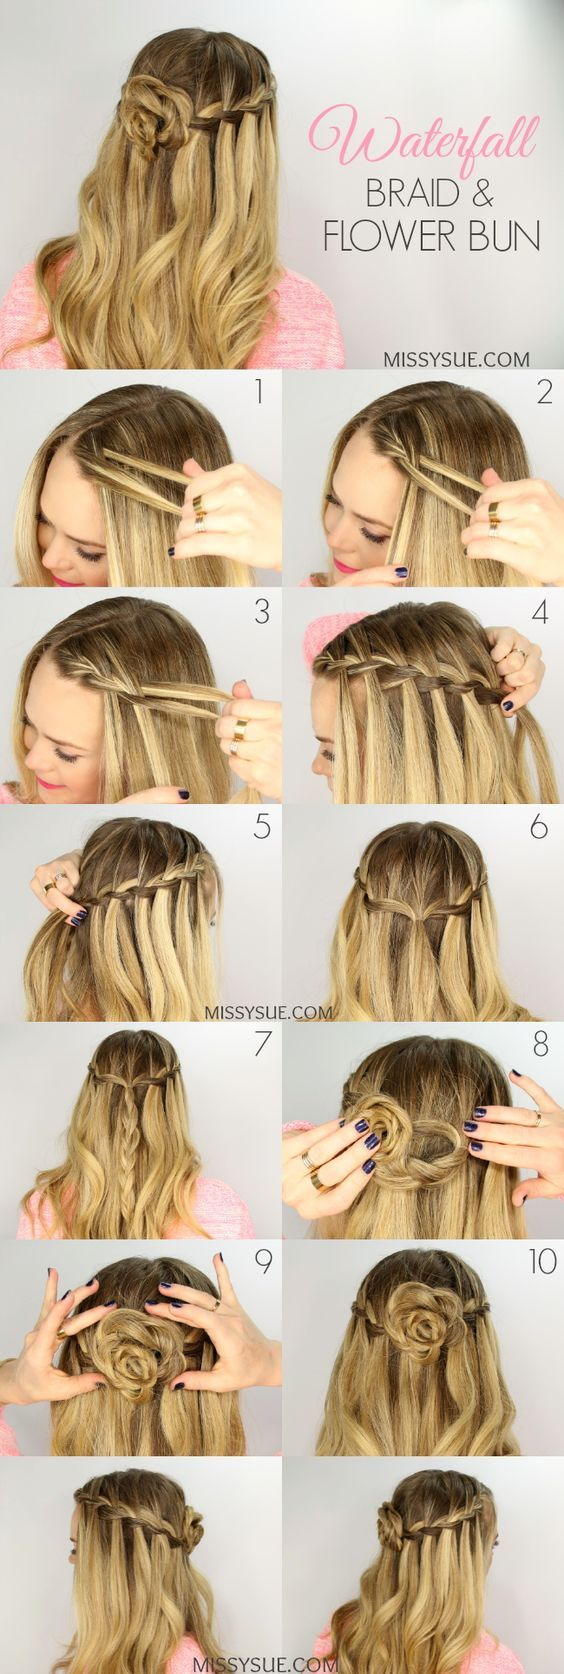 25 Best Ideas About Waterfall Braid Prom On Pinterest